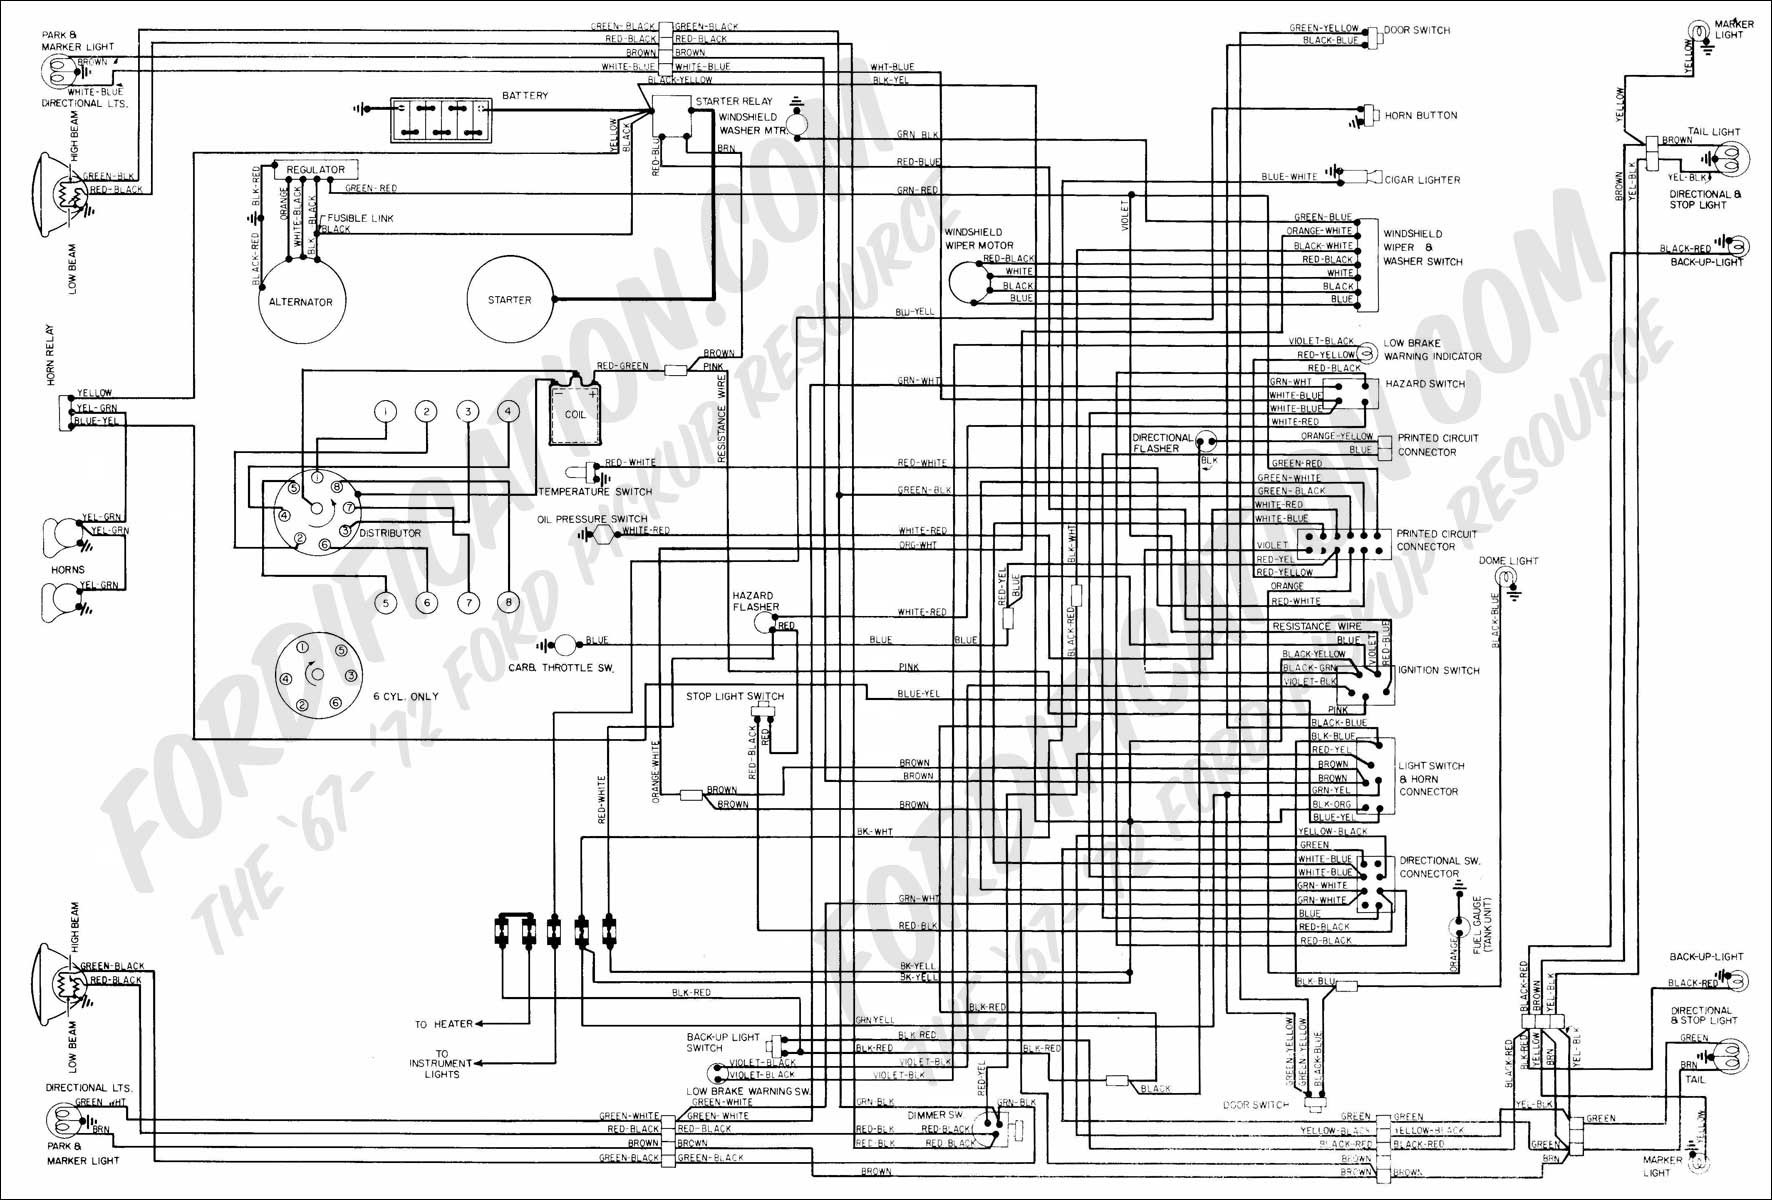 2003 ford Windstar Wiring Diagram 1998 ford F150 4 2 V6 Fuse Box Diagram  ford Wiring